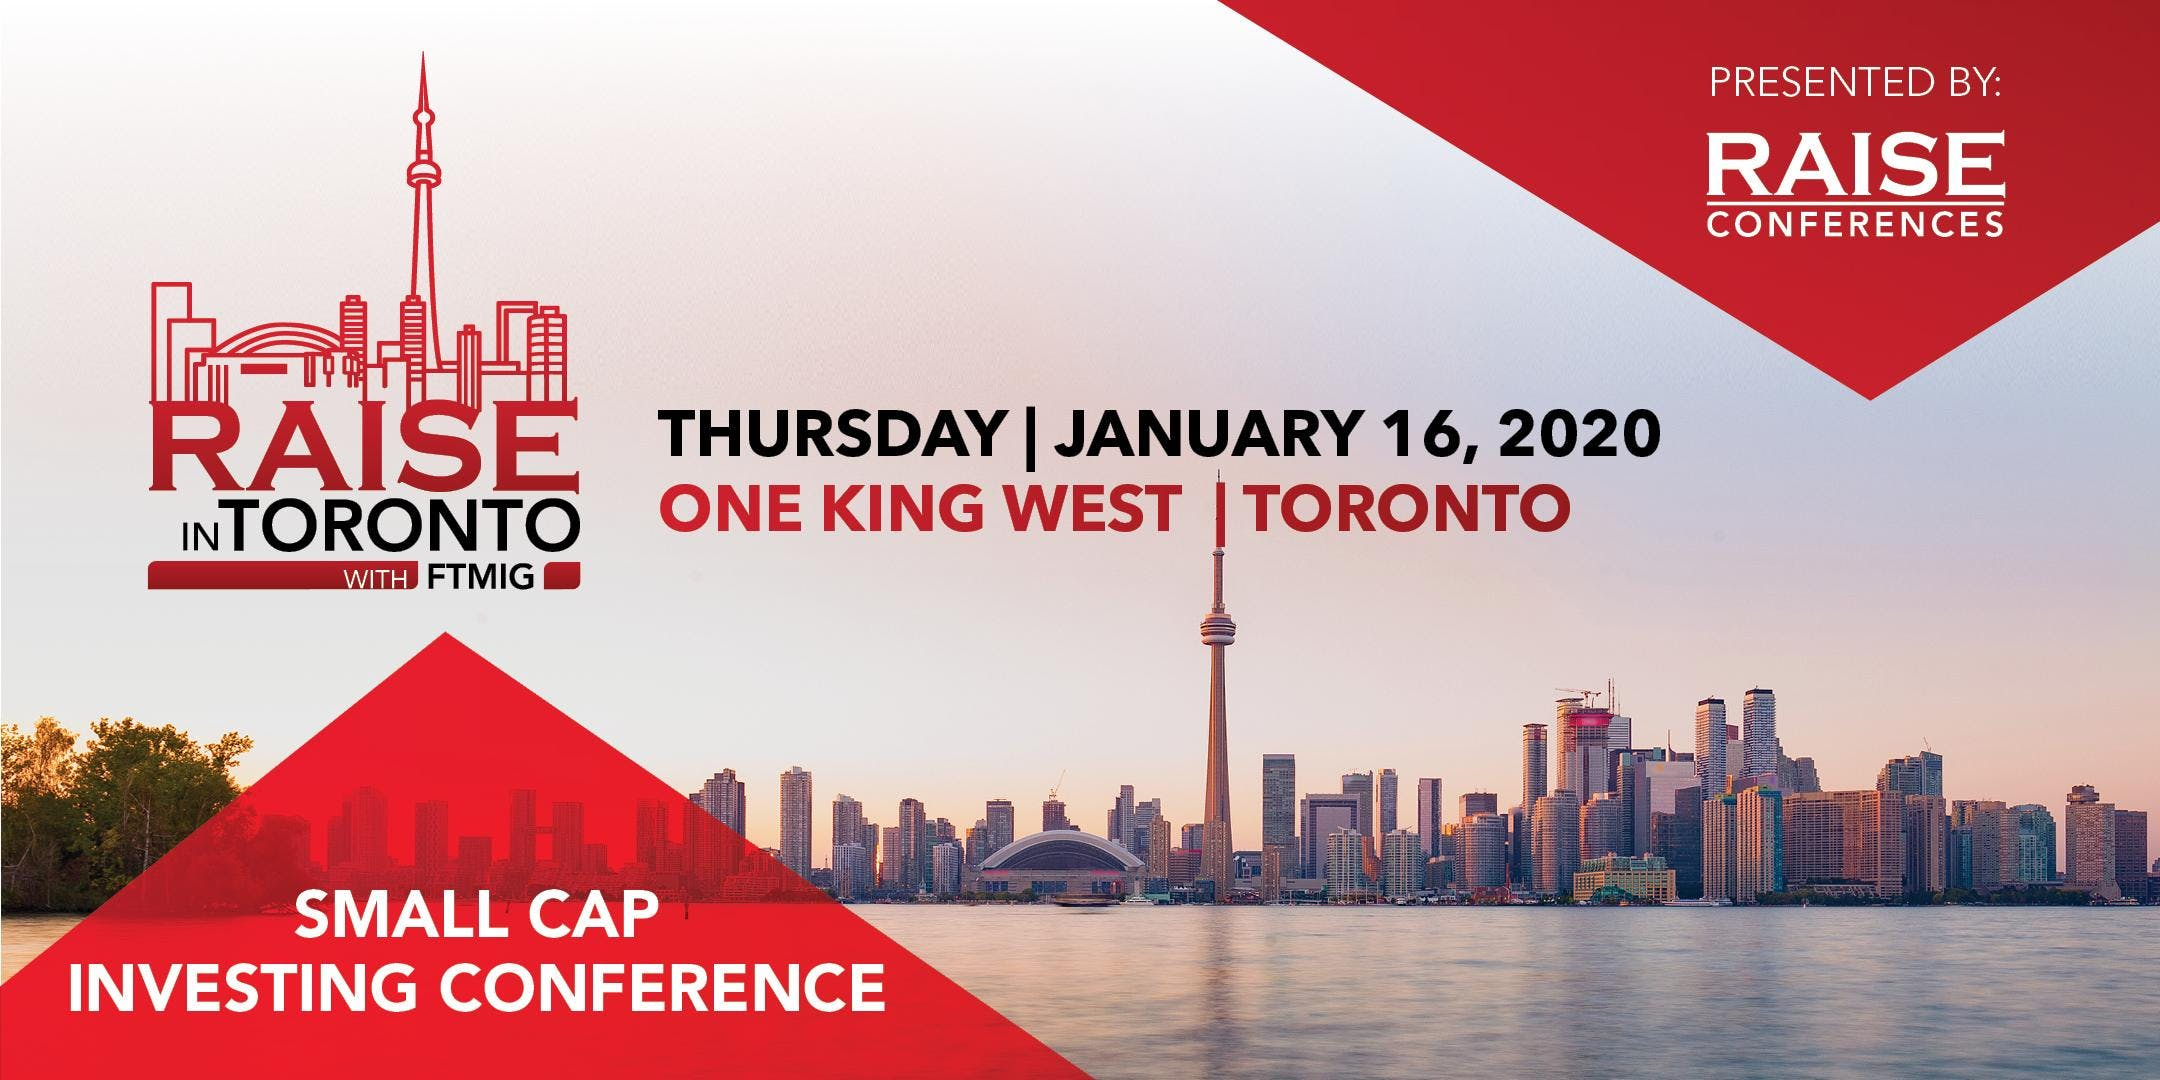 RAISE in TORONTO Small Cap Investing Conference